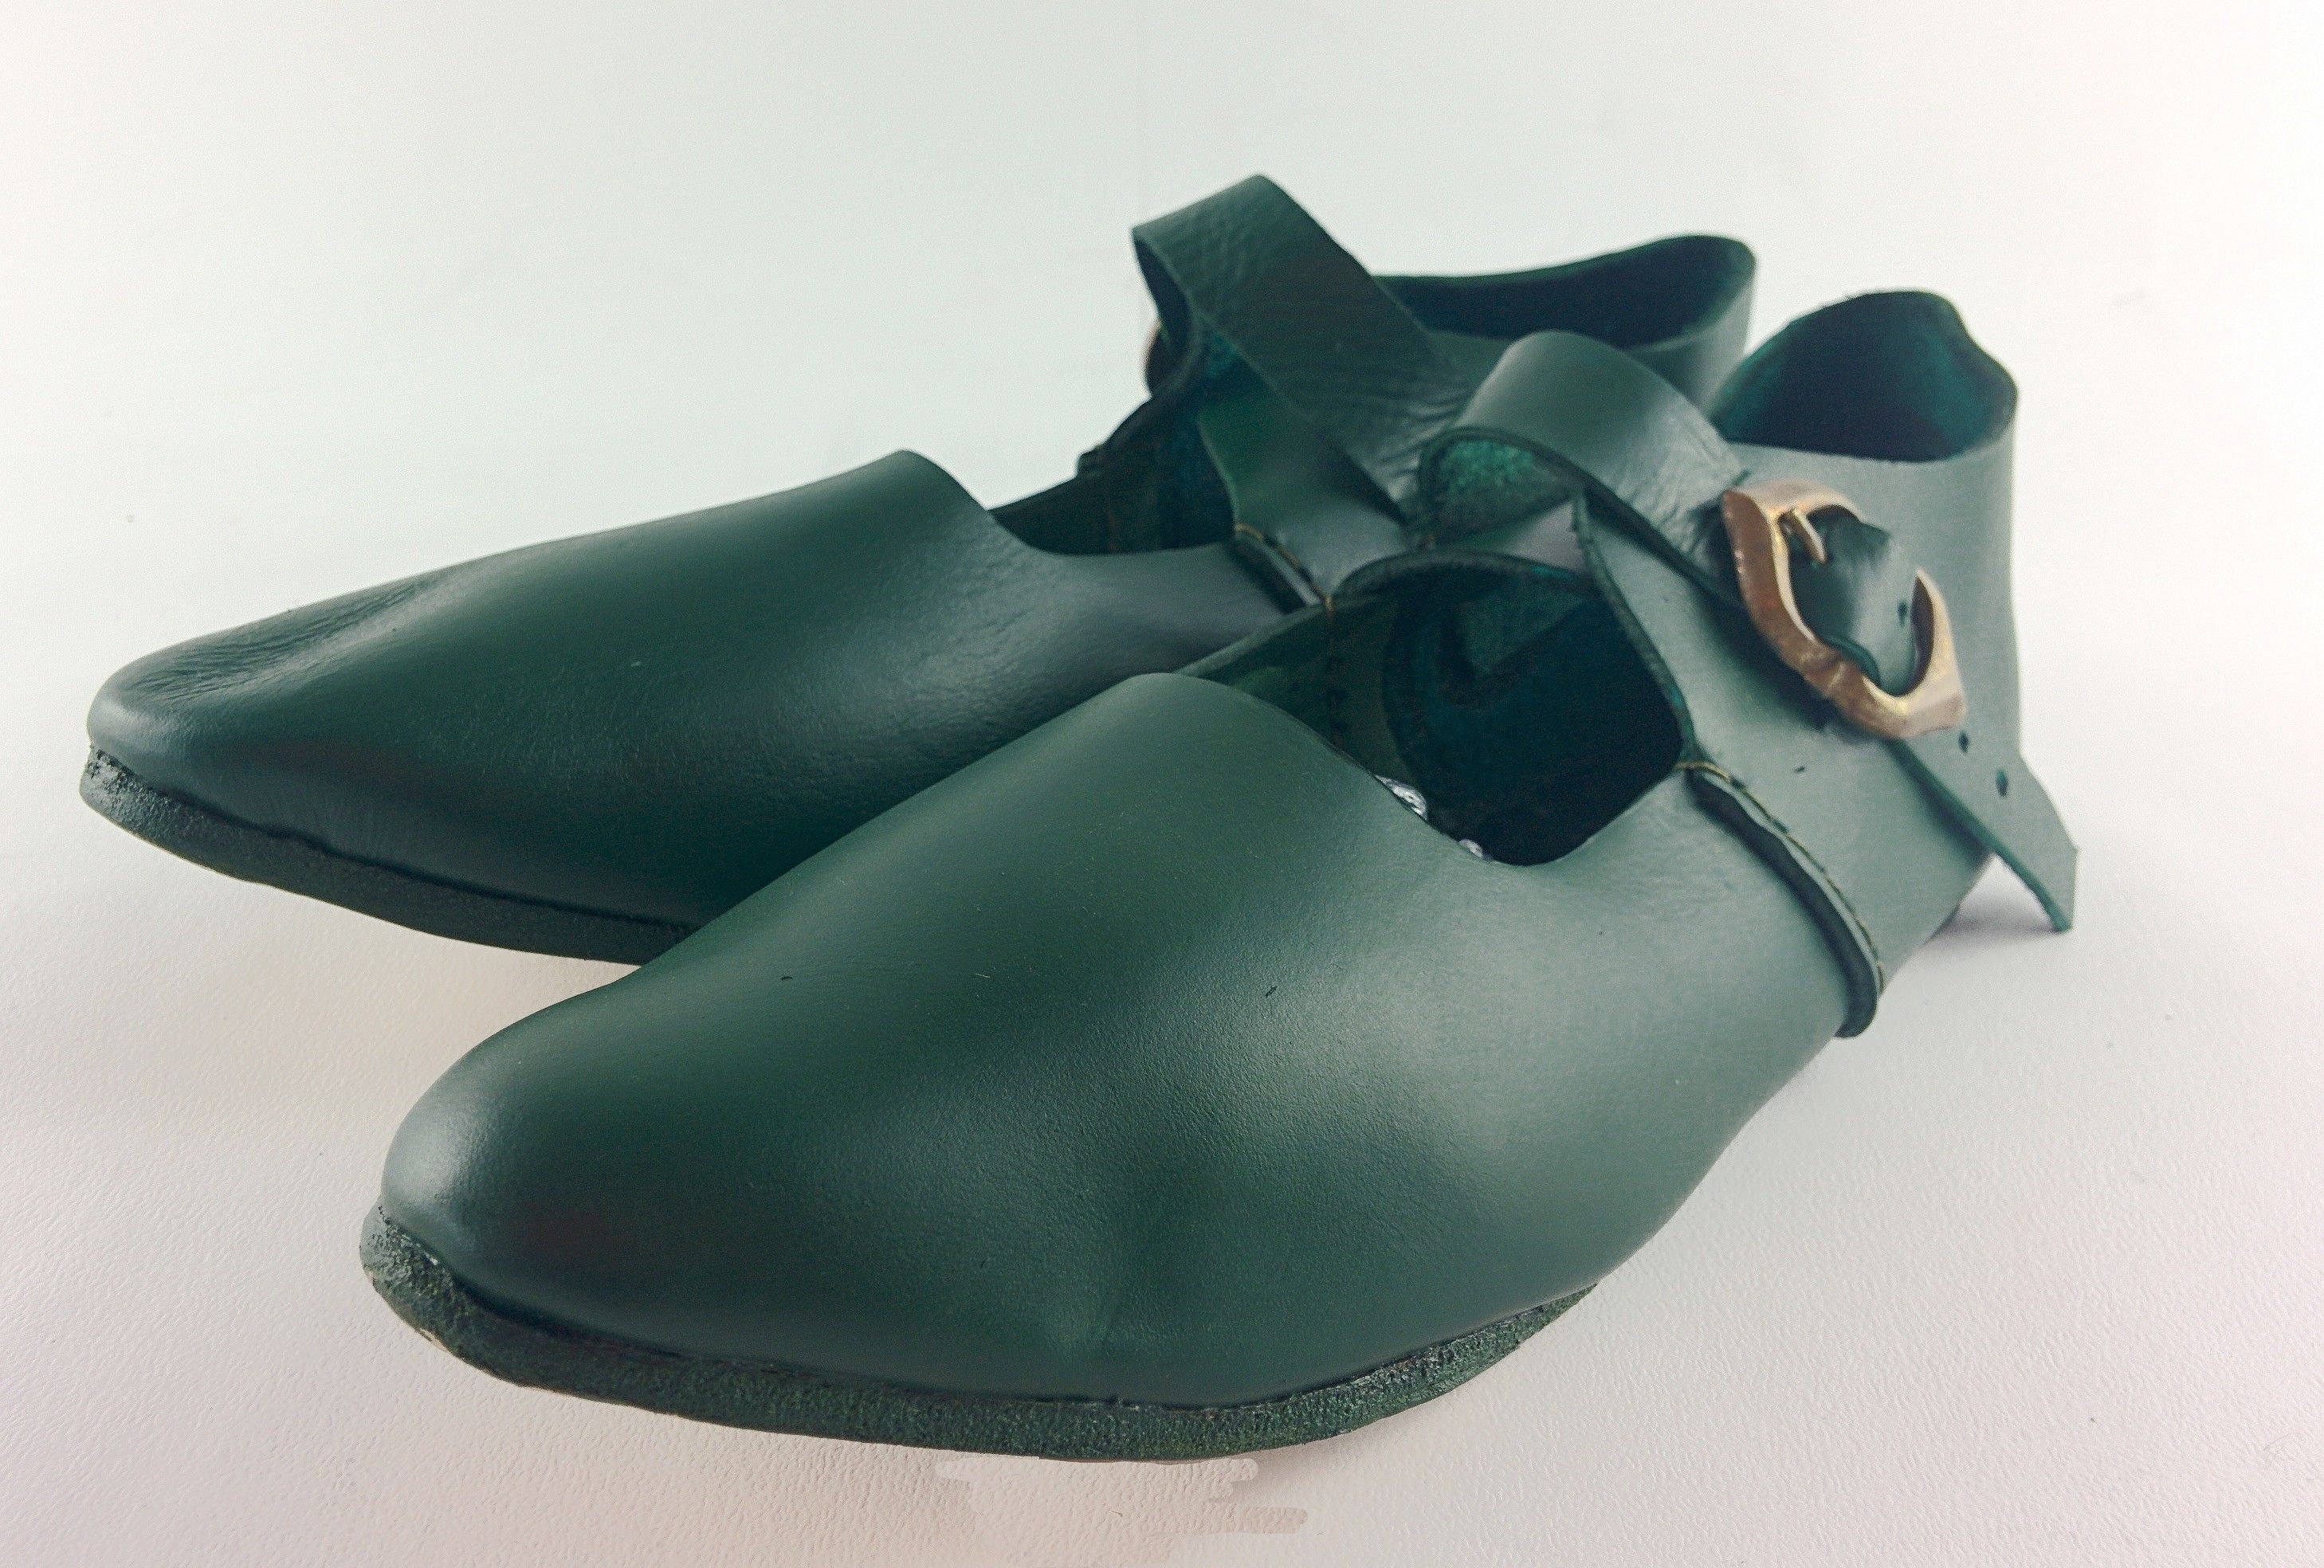 af3e0782809 An authentic leather court shoe for ladies or nobility living ...